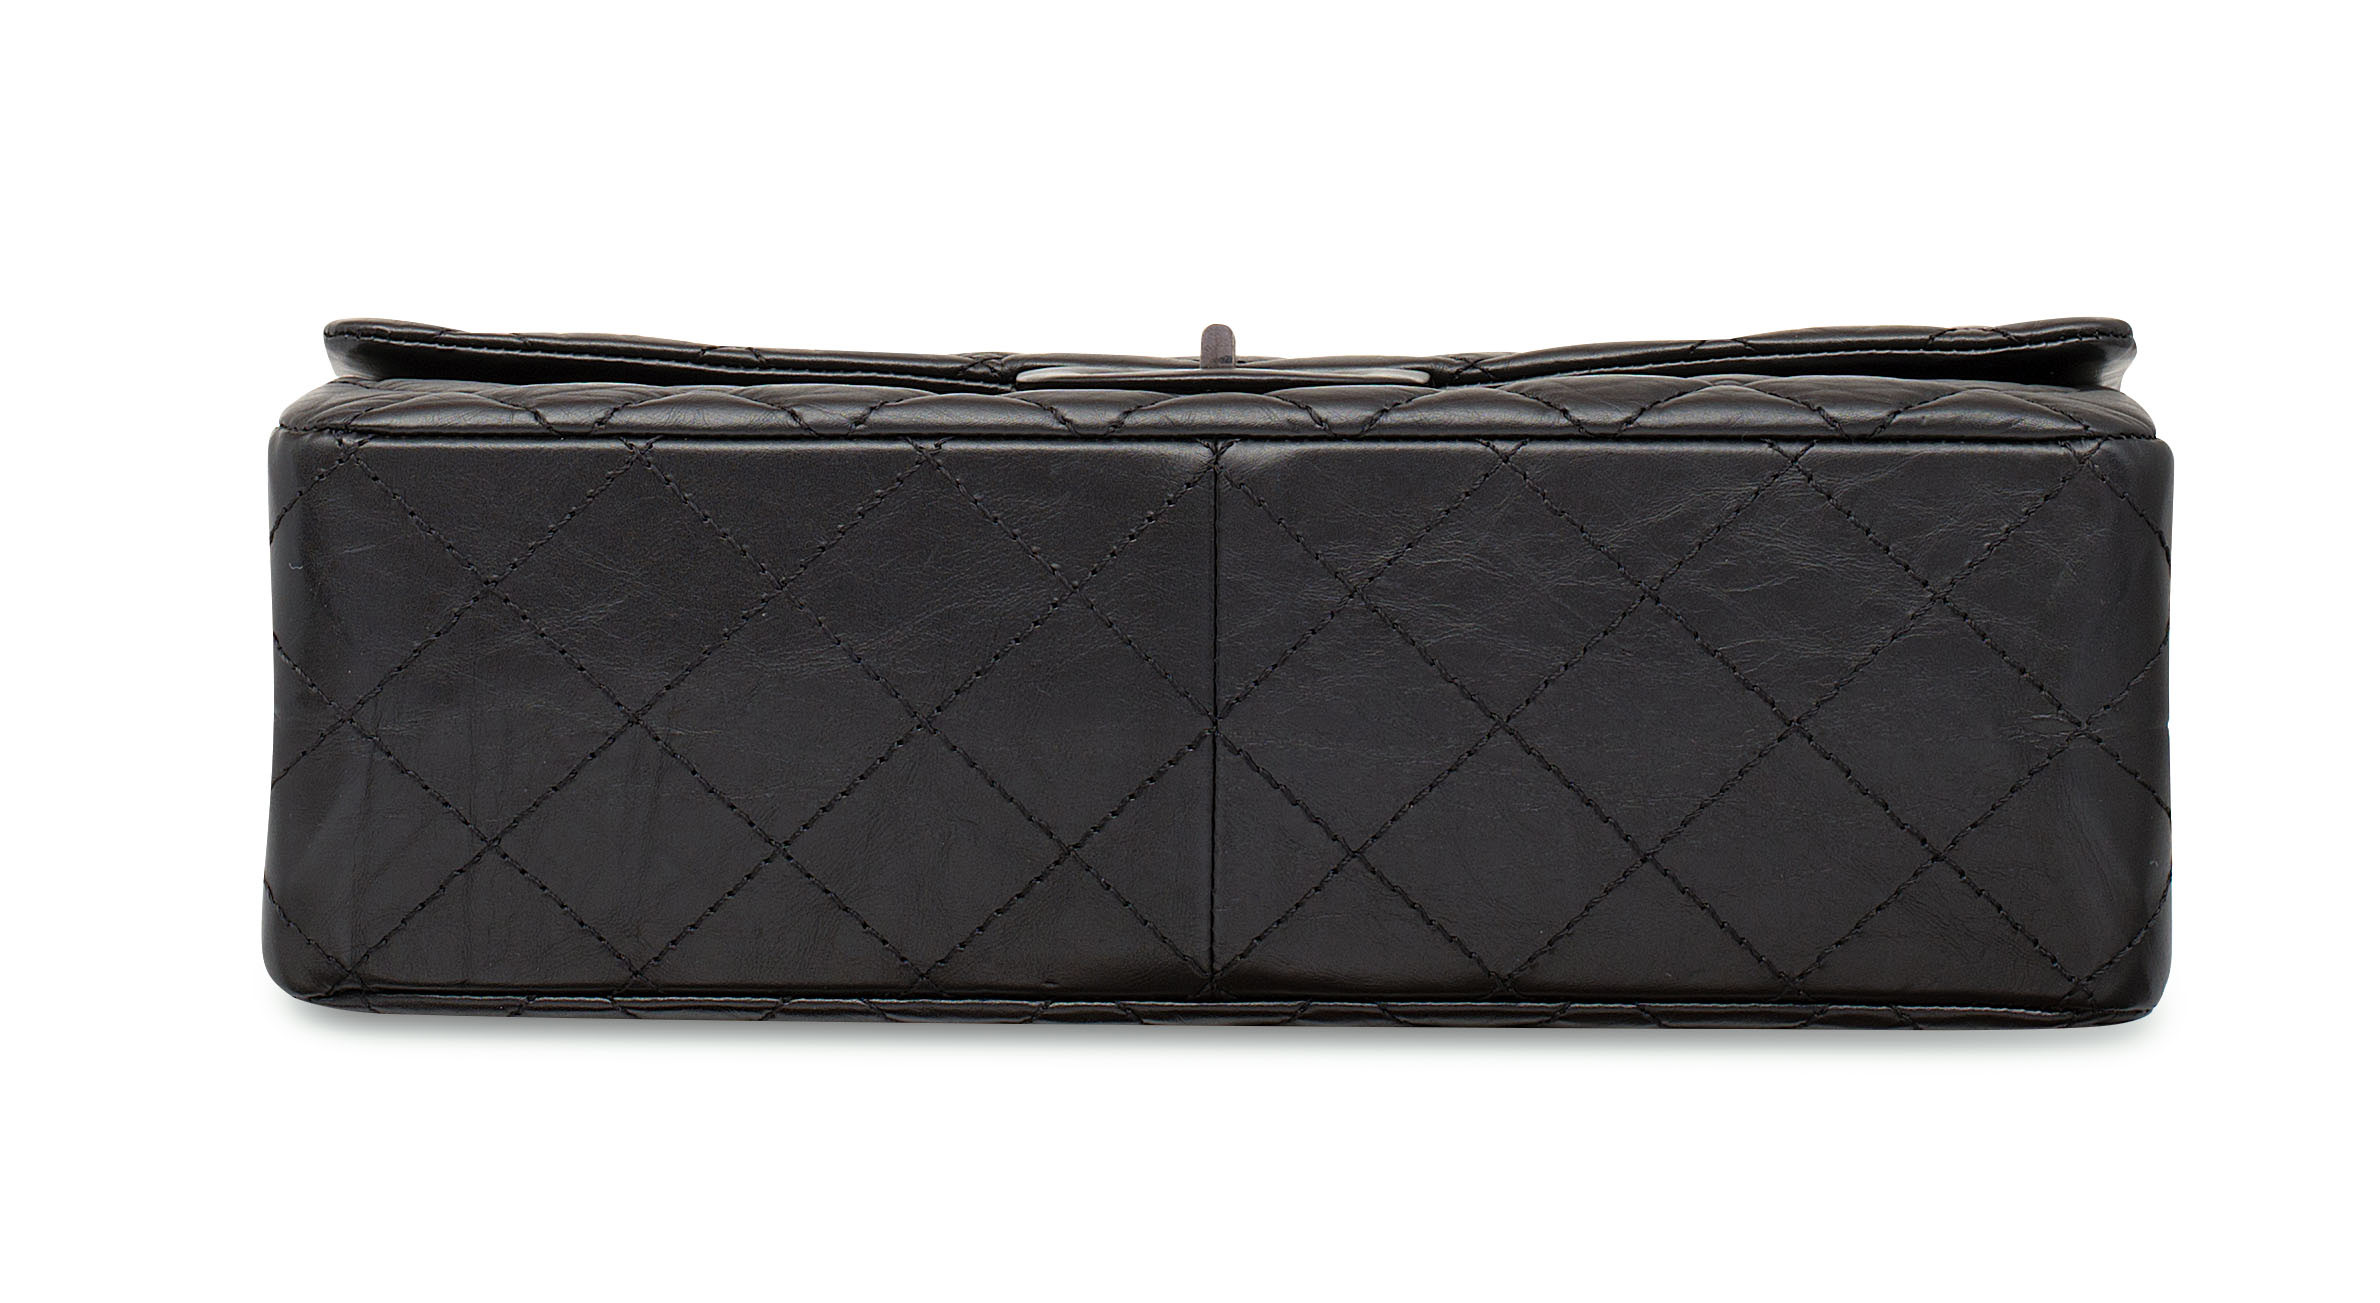 A BLACK AGED LAMBSKIN LEATHER